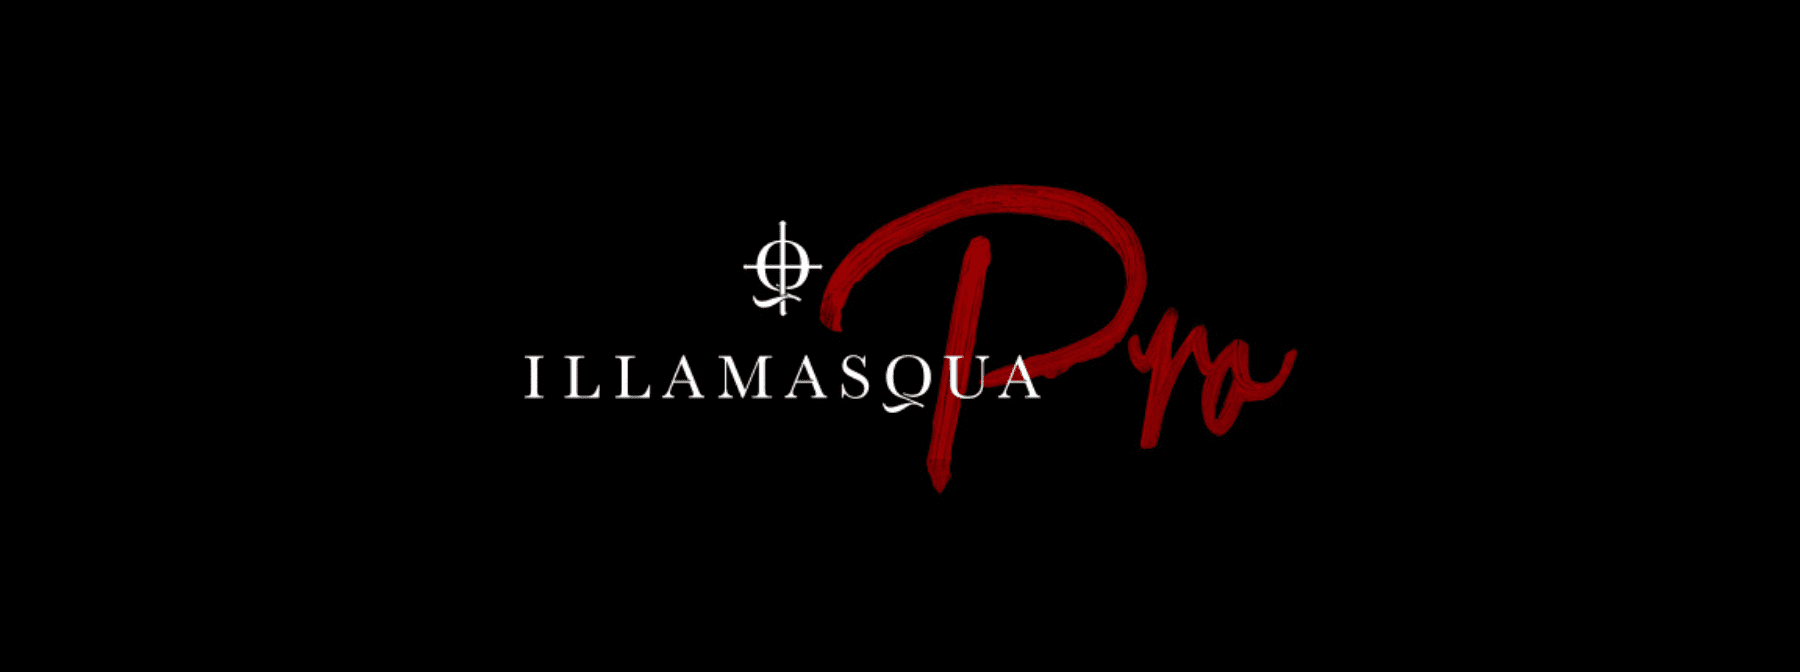 ILLAMASQUA PRO: NEWSLETTER, ISSUE 8, MARCH 2021